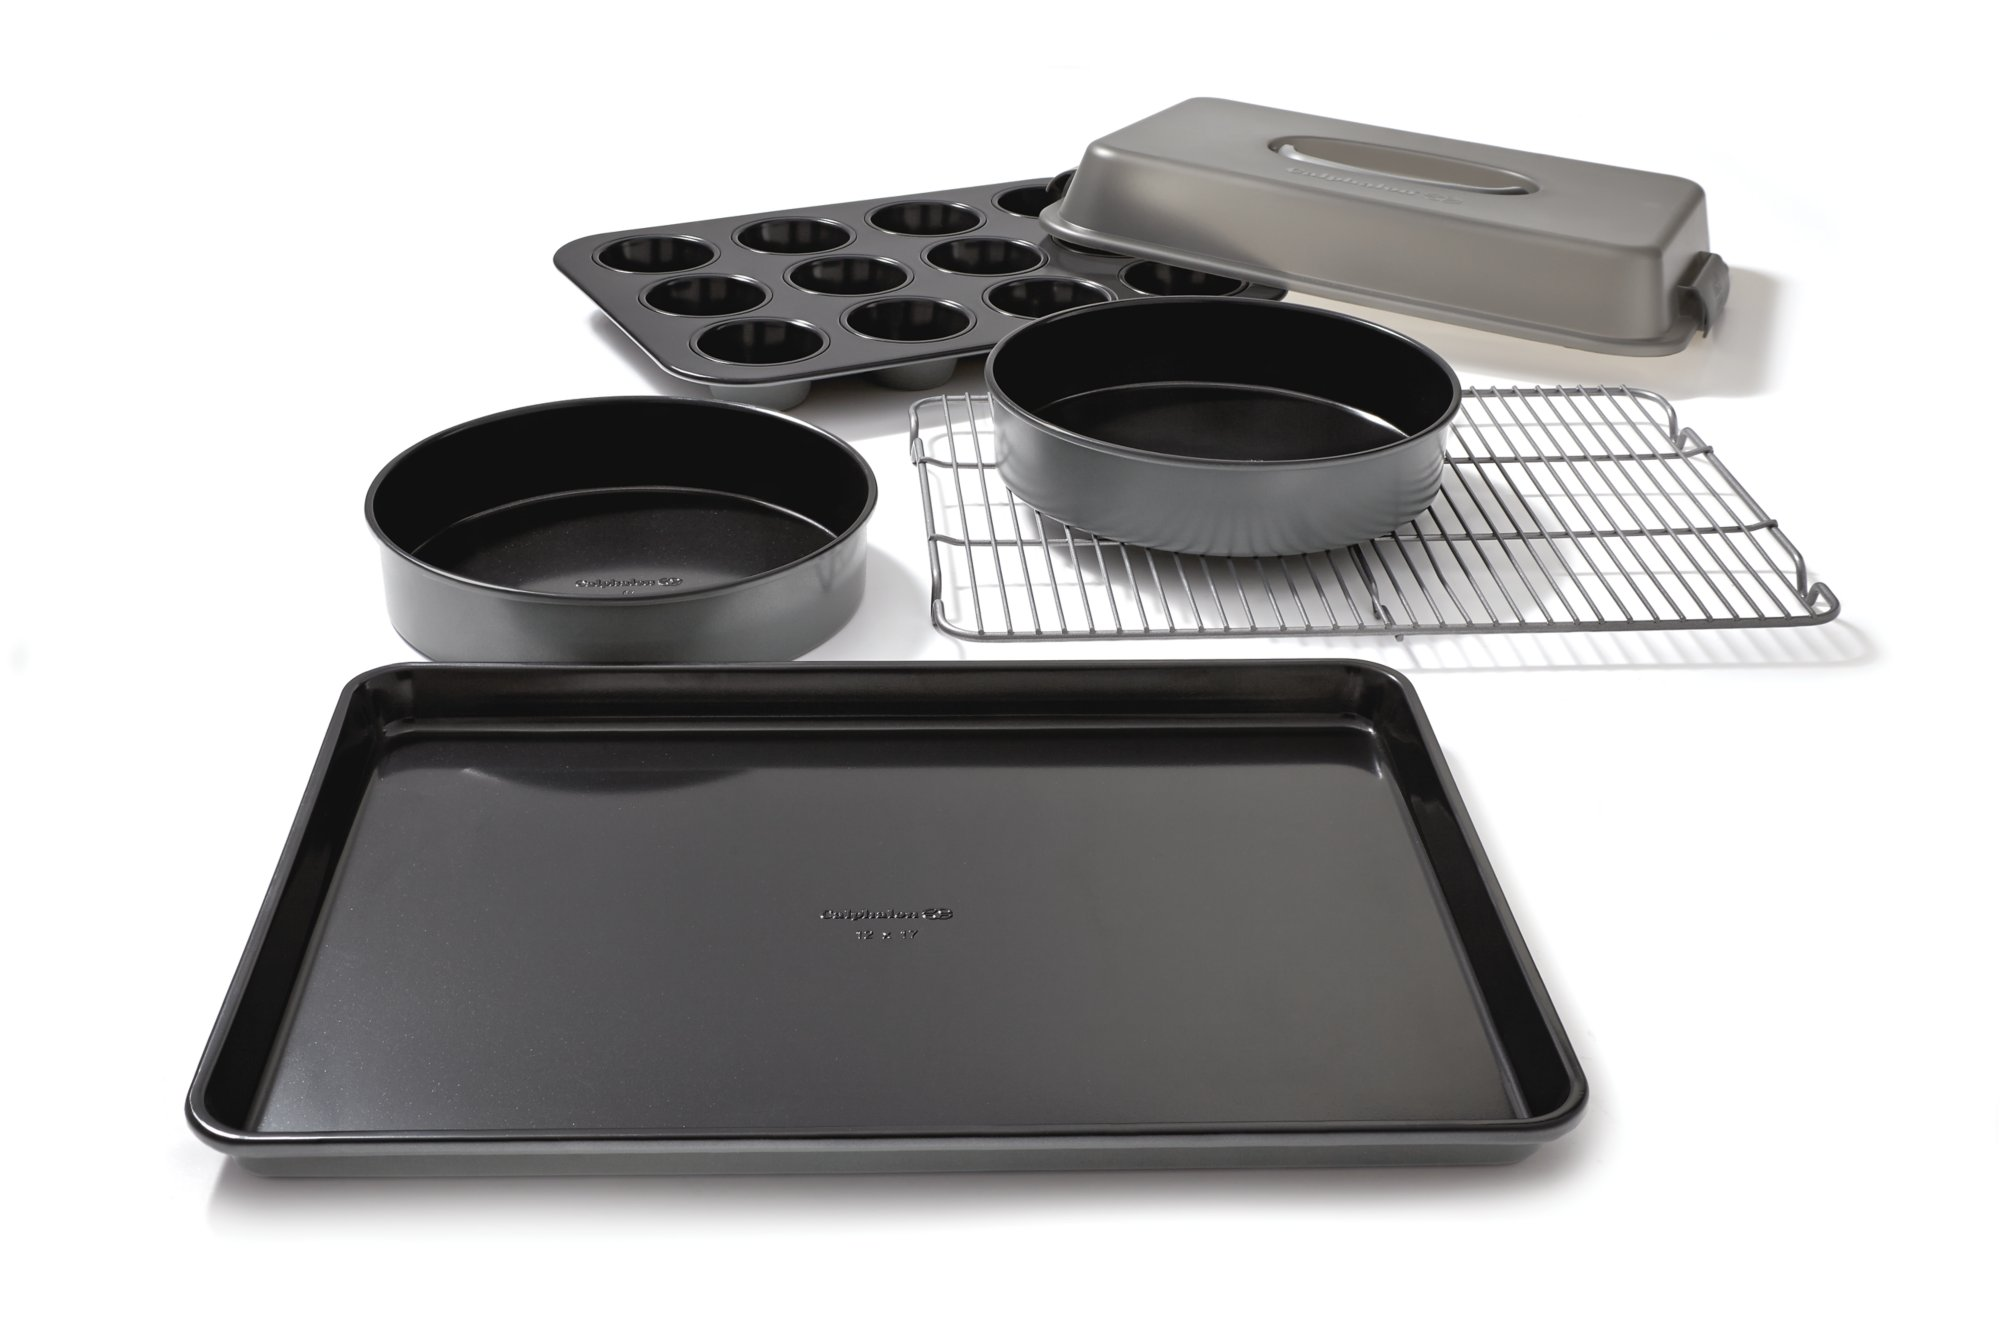 Calphalon Signature Nonstick Bakeware 6 piece set